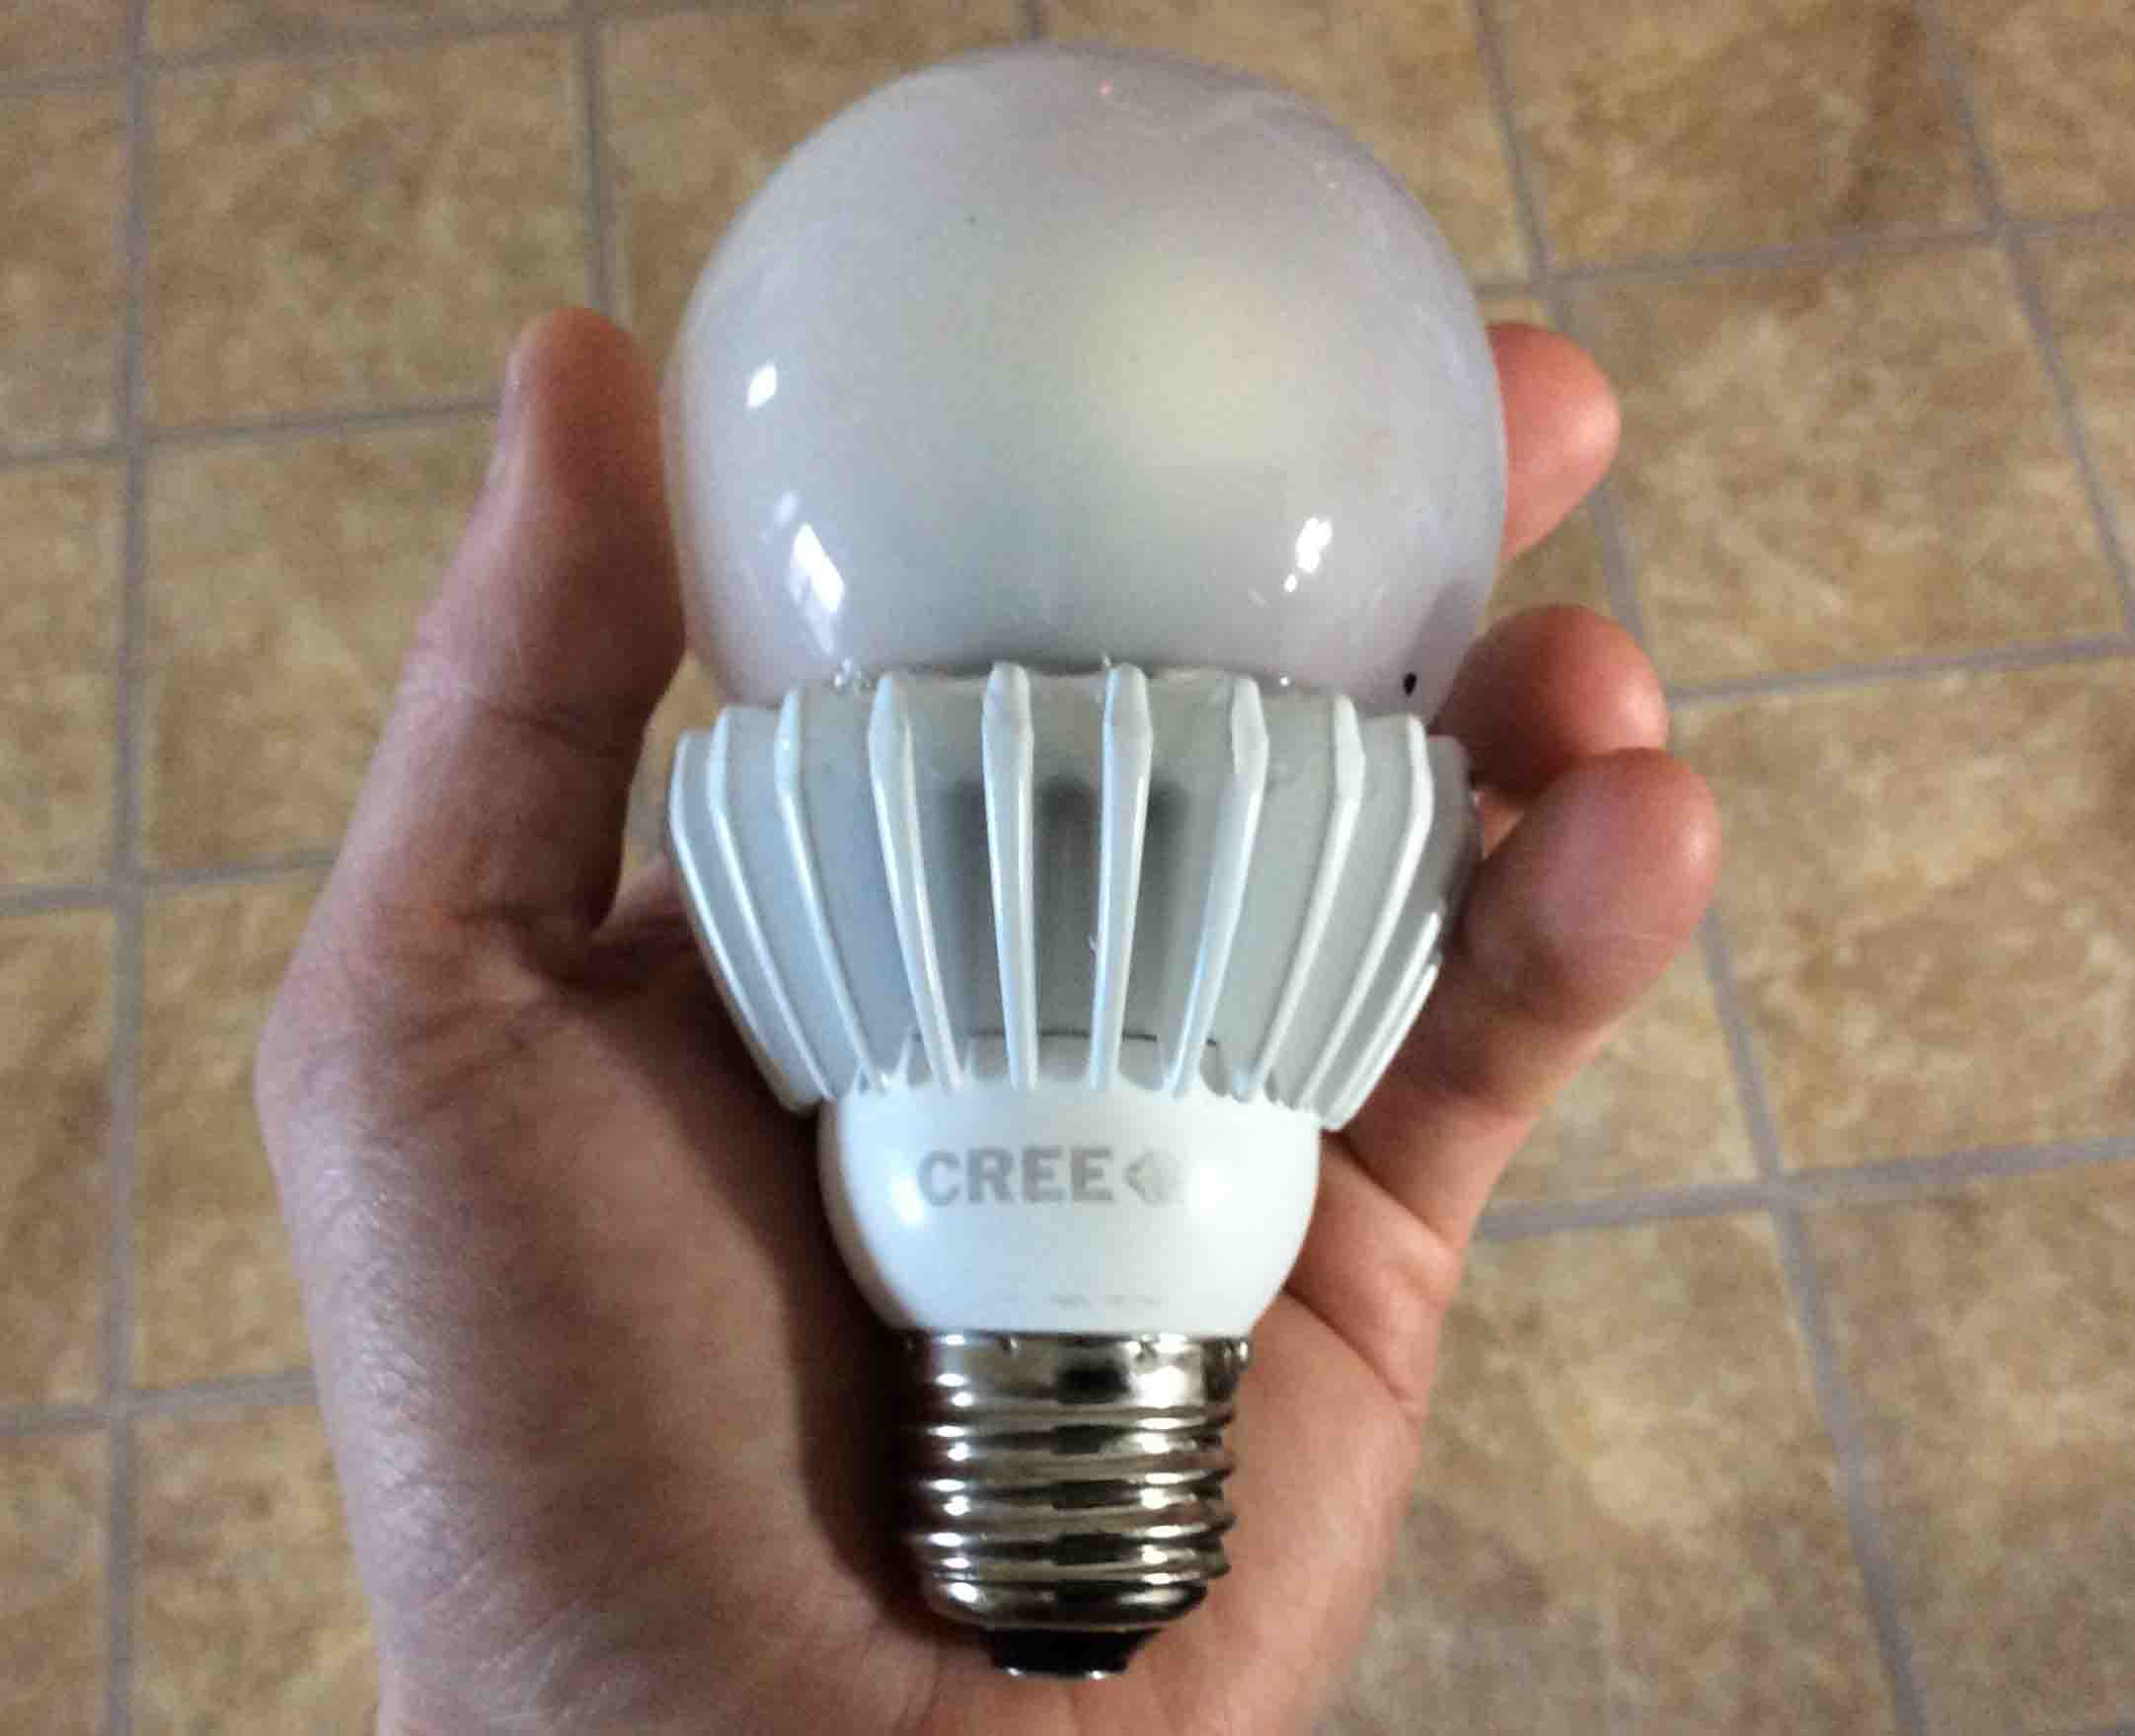 Cree 100w led soft white 2700k dimmable light bulb review toms picture of the cree 100w led dimmable a21 light bulb held in hand arubaitofo Image collections